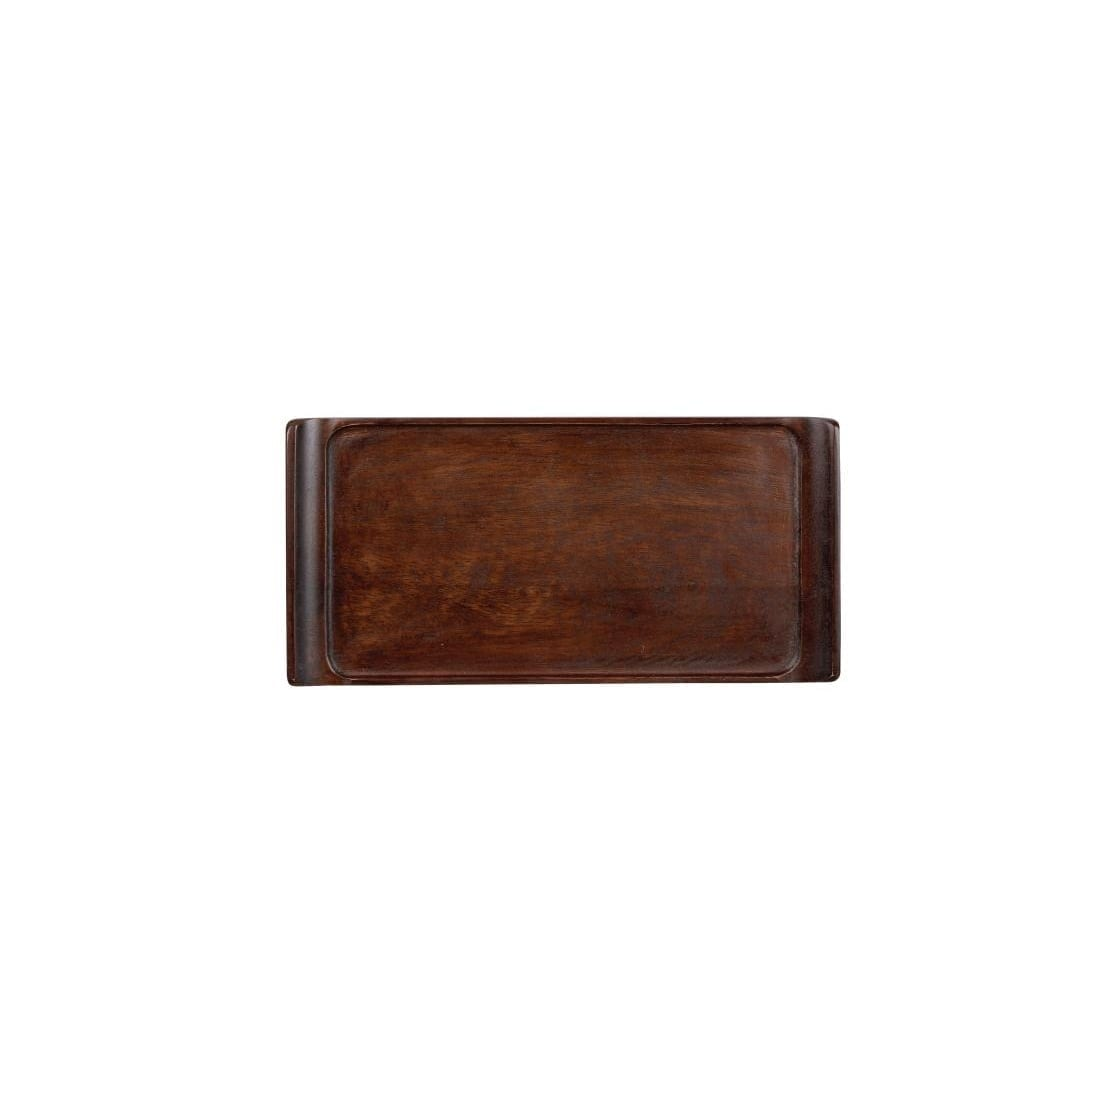 "Alchemy Wooden Buffet Tray - 300x145mm 11 3/4x5 3/4"" (Box 6) (Direct)-0"